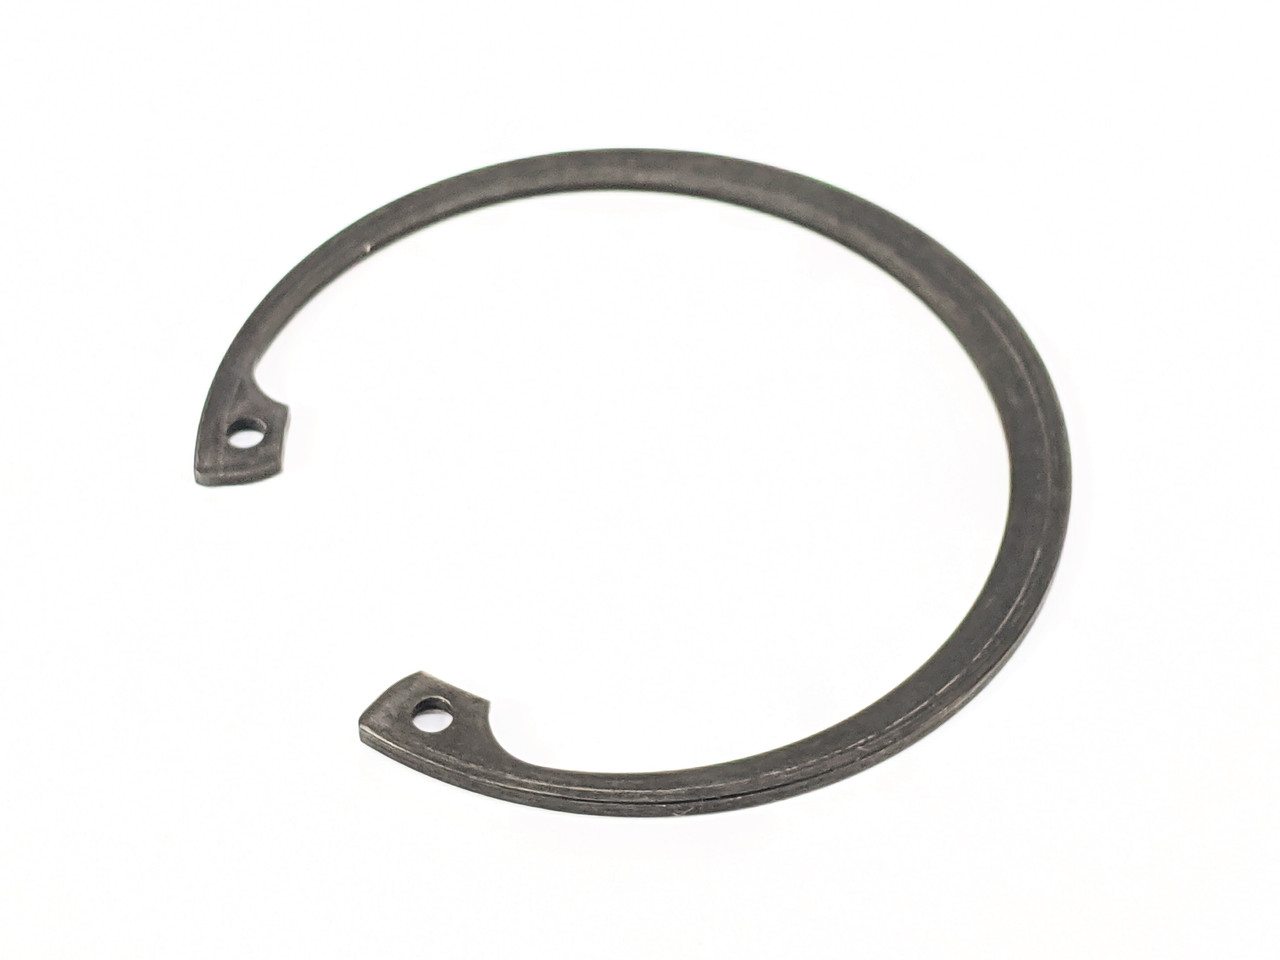 Snout Seal Retaining Ring DMPE 100-006-99-411